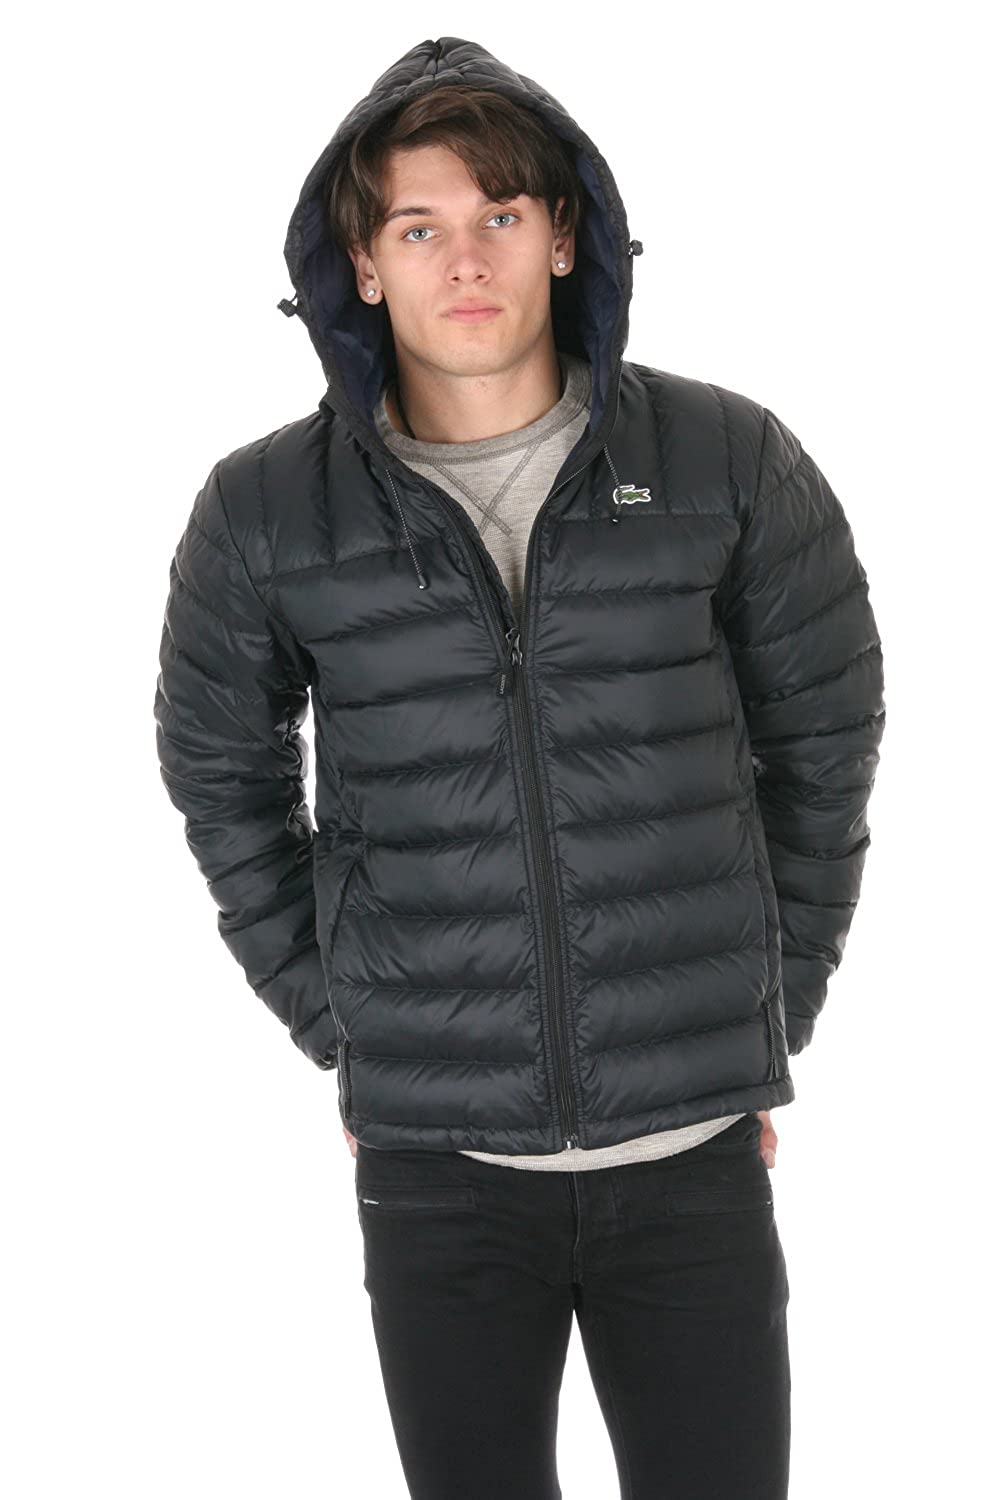 f4b9ae0f Lacoste Packable Down Jacket BH2533-51-DY4 Black/Navy Blue: Amazon ...